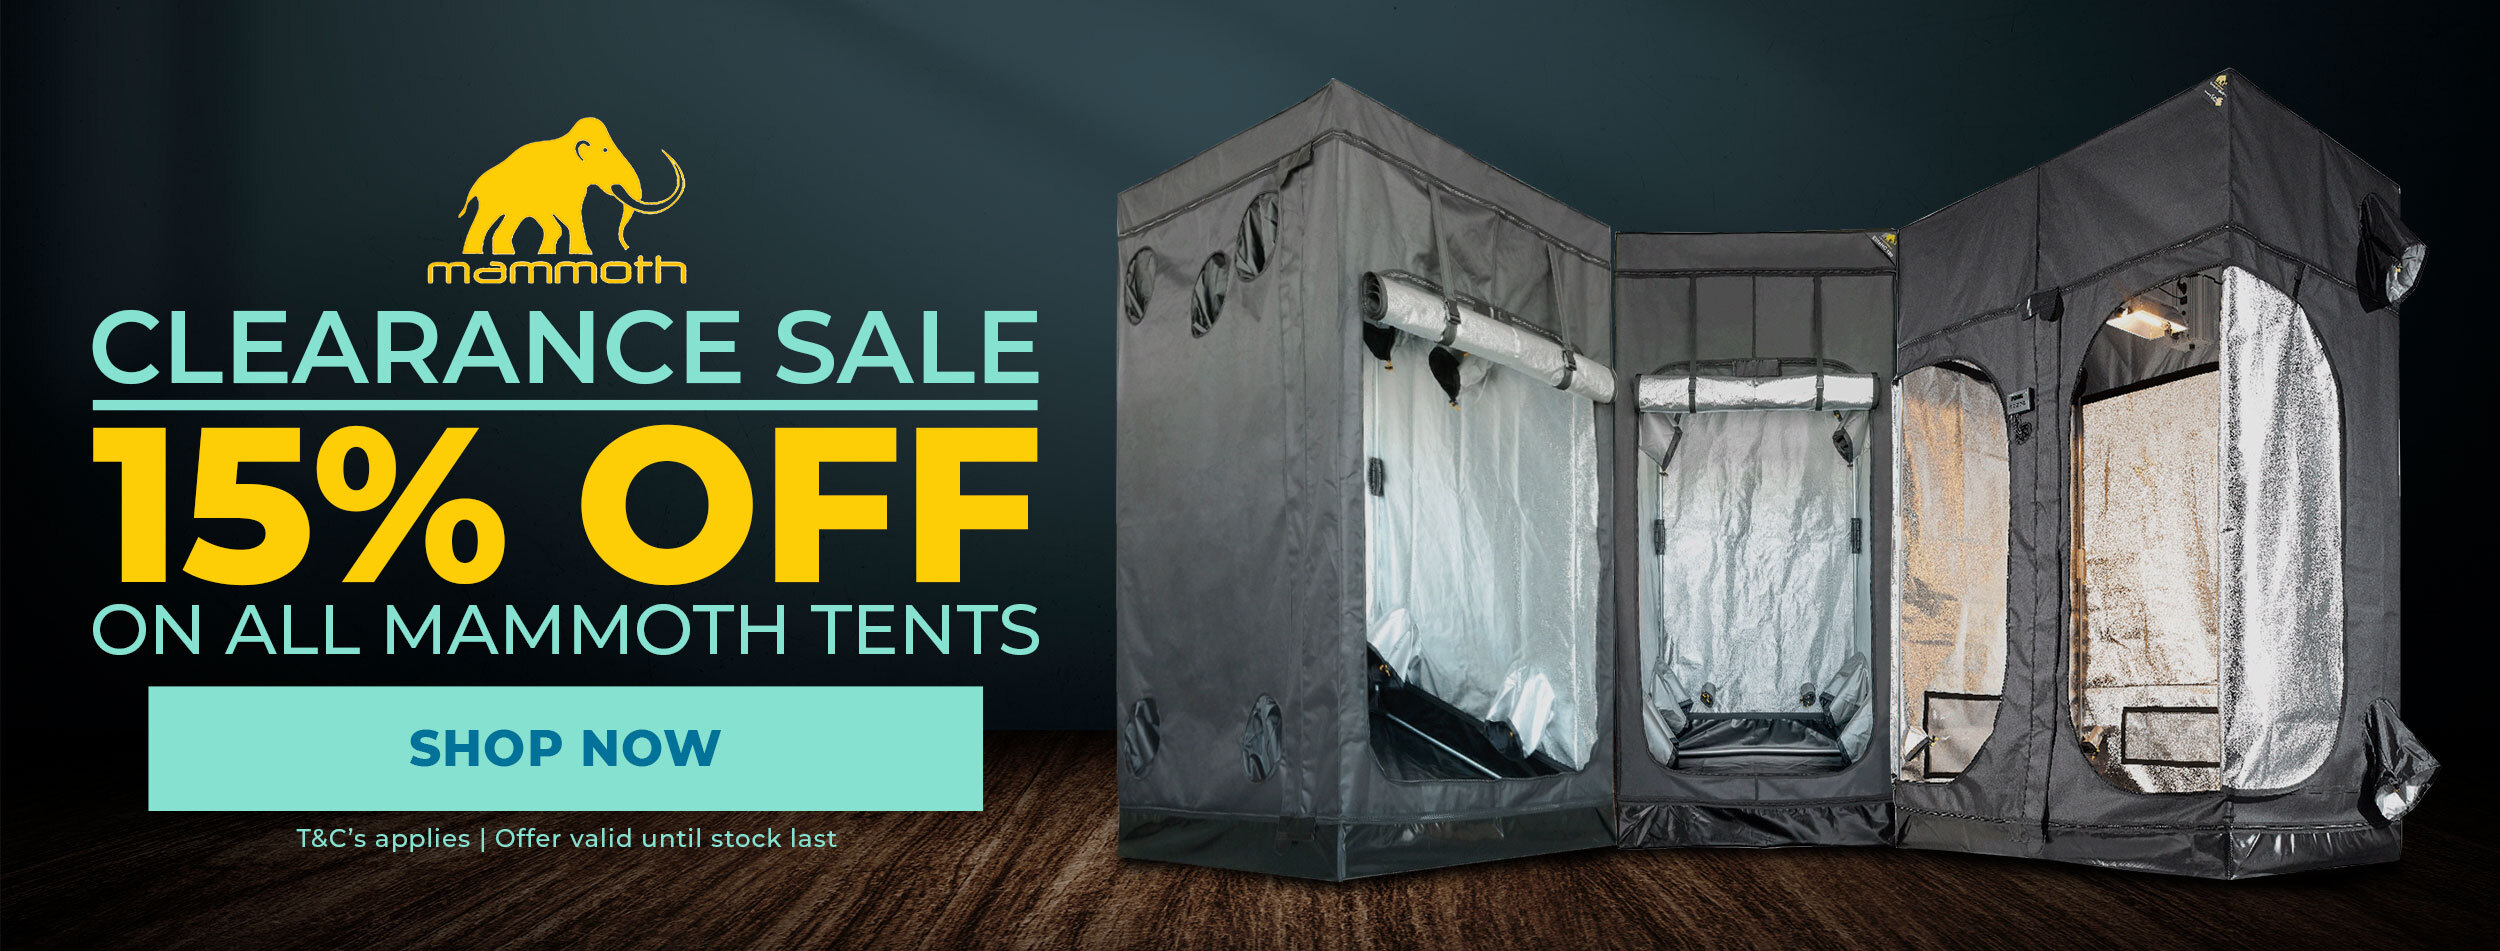 Mammoth Grow Tent Clearance Sale - 15% OFF